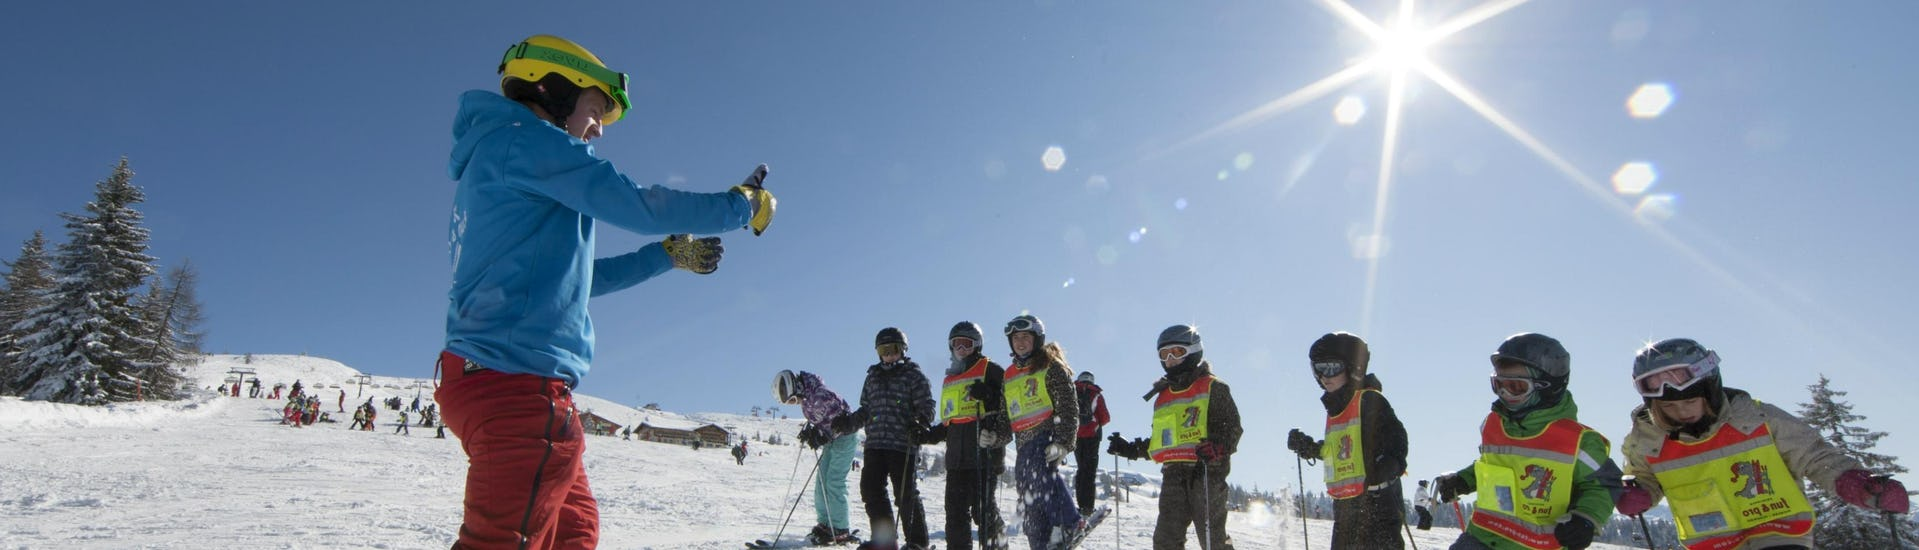 A ski instructor is holding one of the many group ski lessons in the ski resort of Monte Rosa.